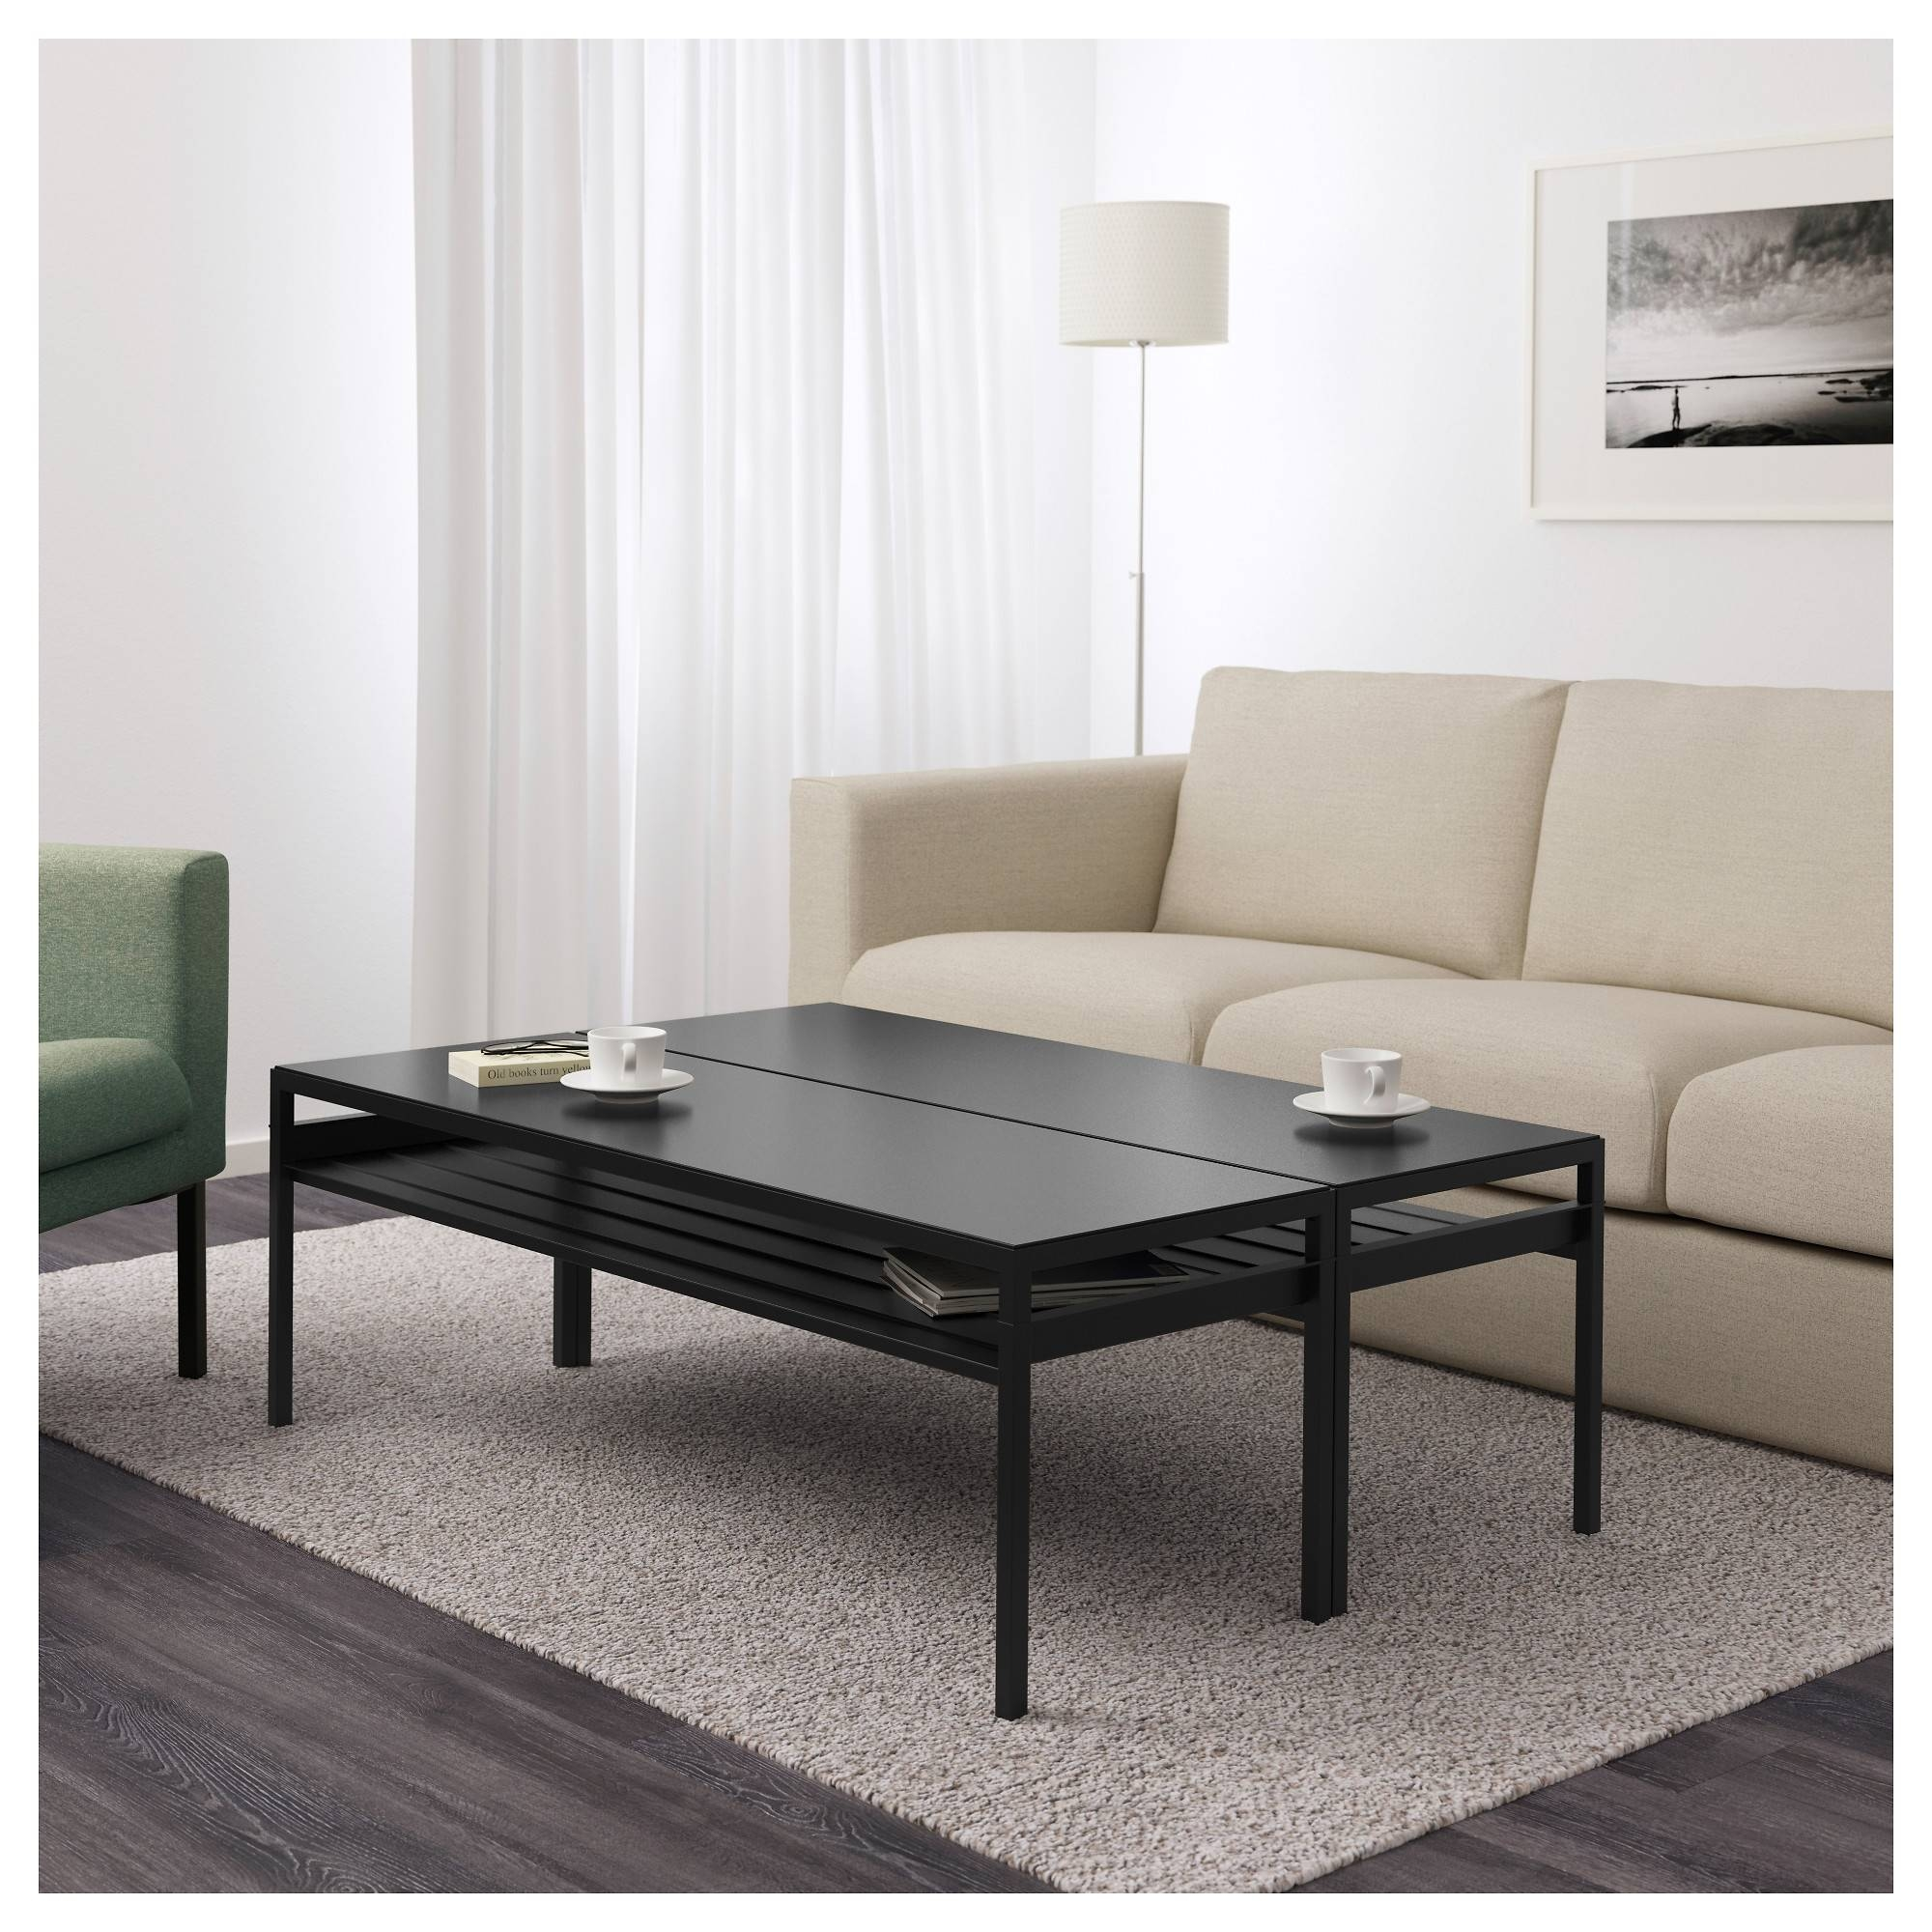 Nyboda Coffee Table W Reversible Table Top Black/beige 120x80x40 Intended For Beige Coffee Tables (View 24 of 30)